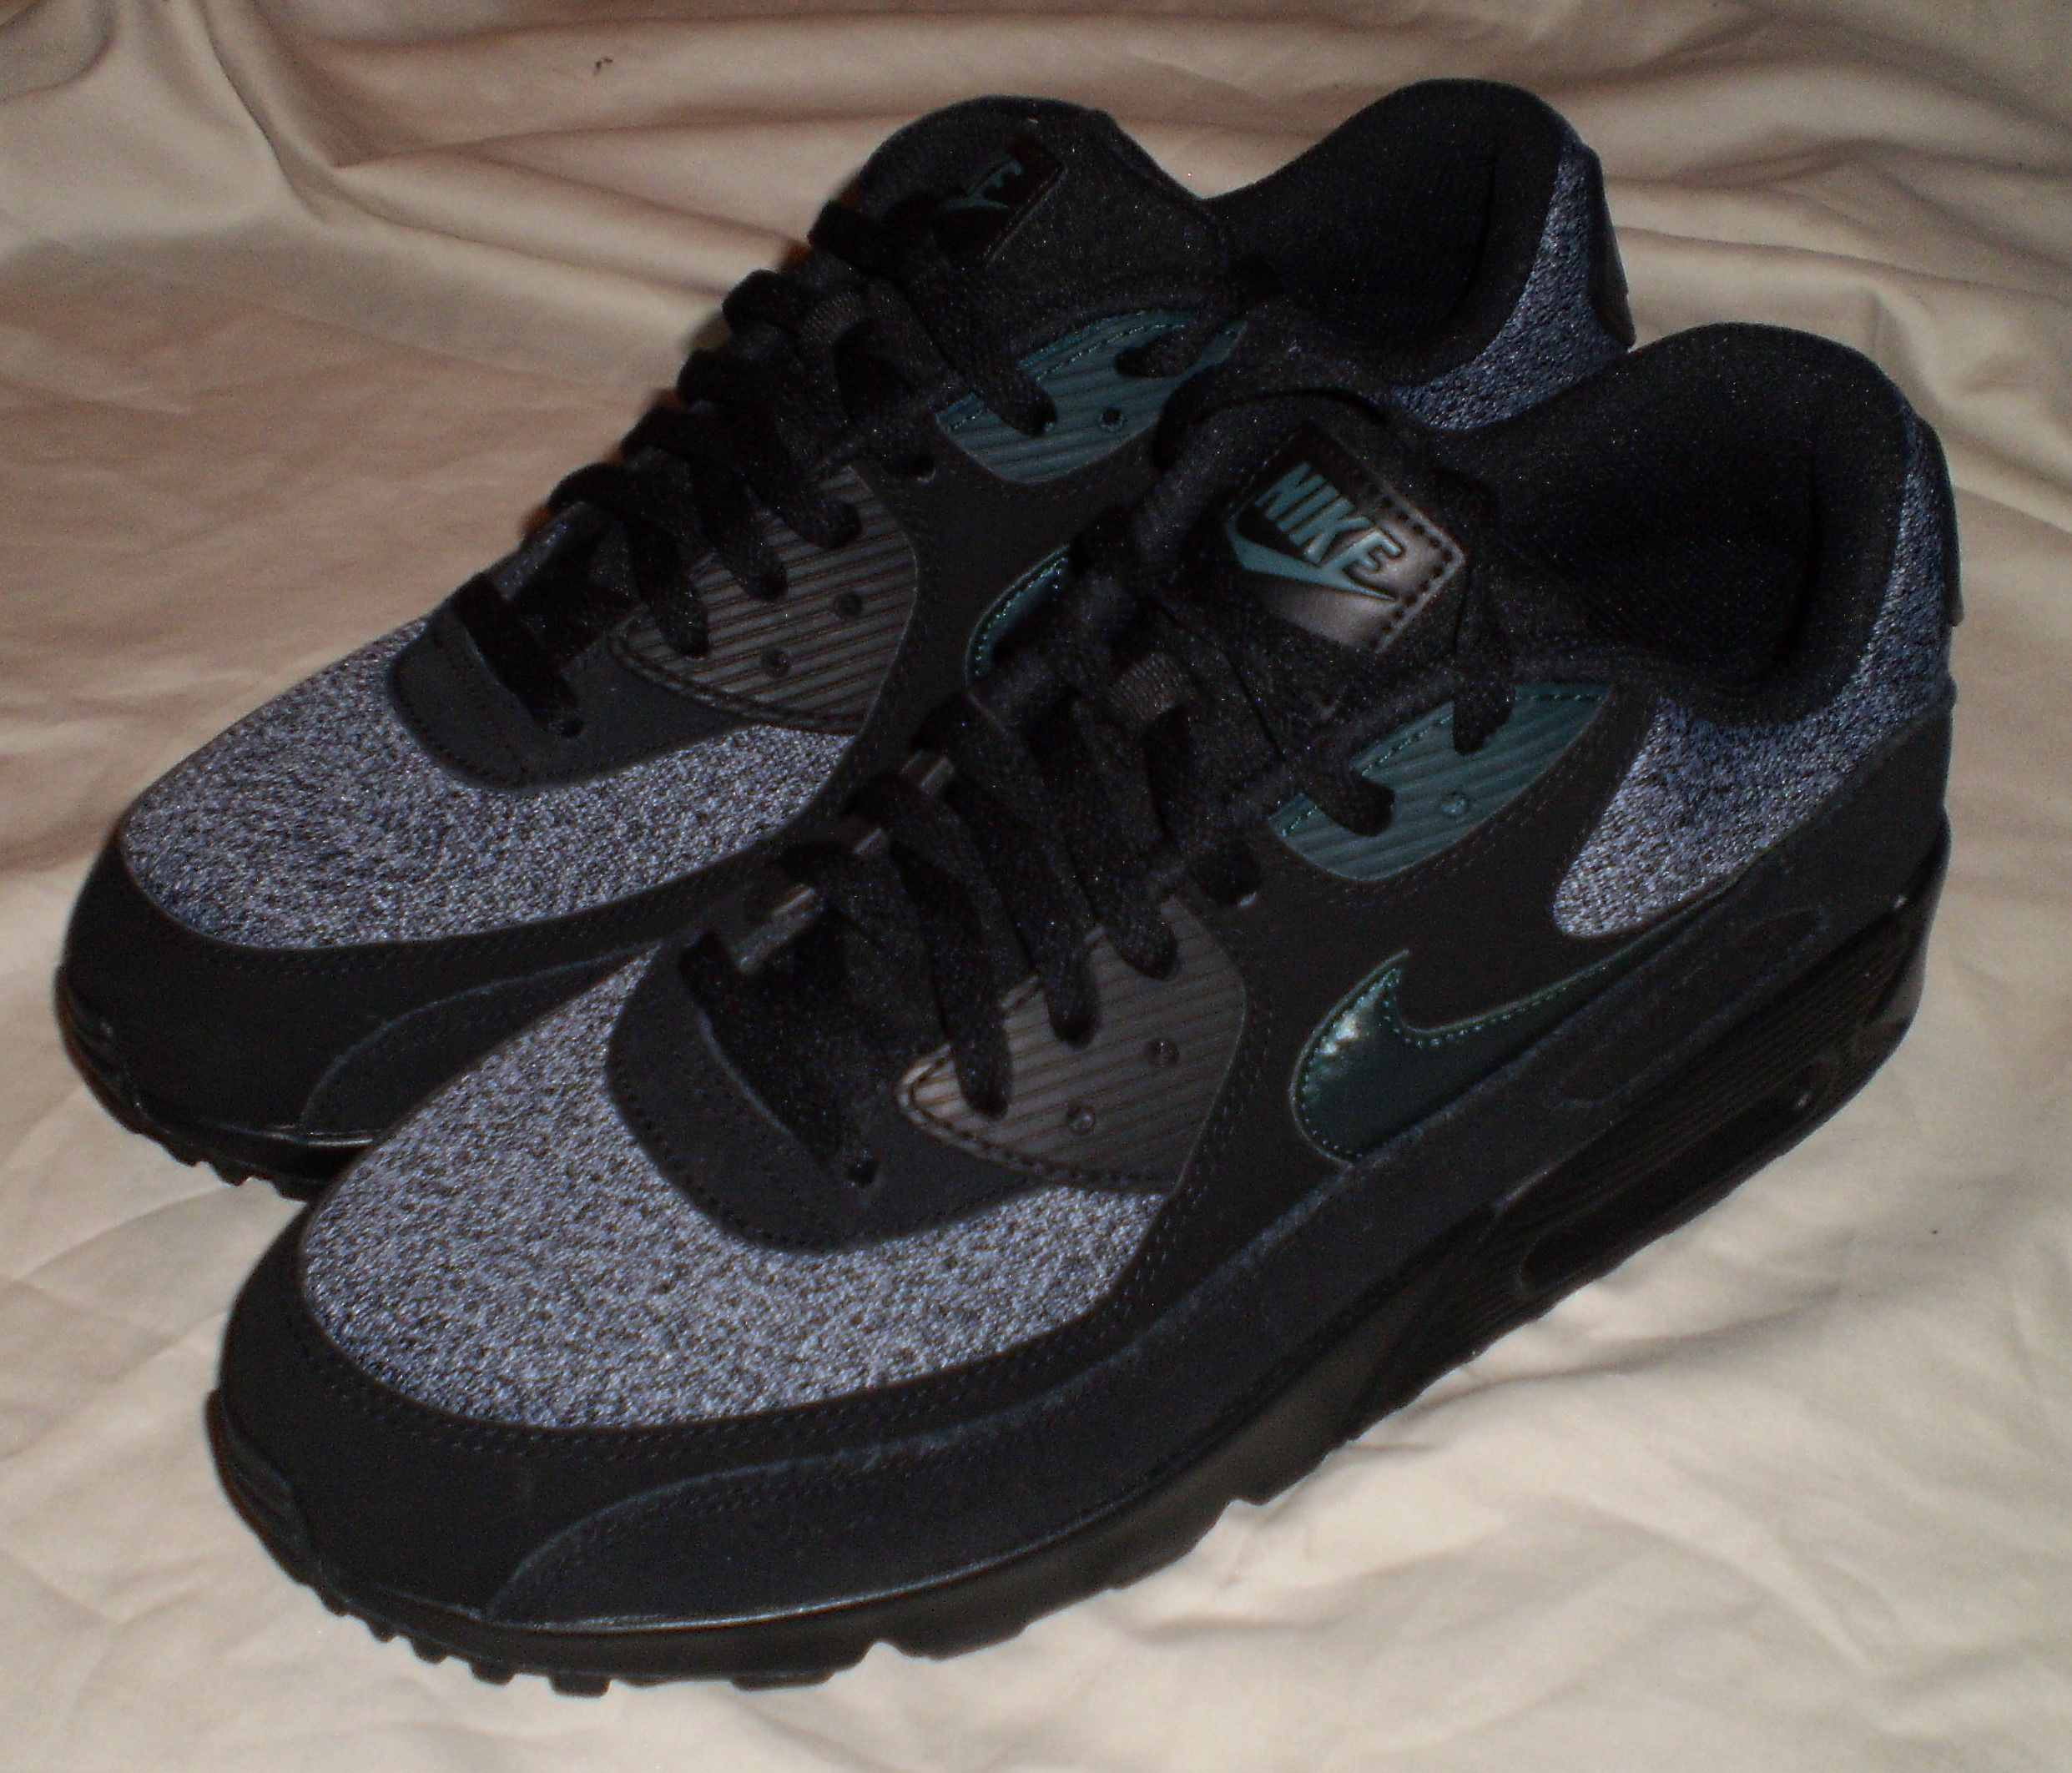 new concept 9da2c d4fcc MENS AIR MAX 90 ESSENTIAL SHOES SNEAKERS BLACK DARK ATOMIC TEAL ARMORY BLUE